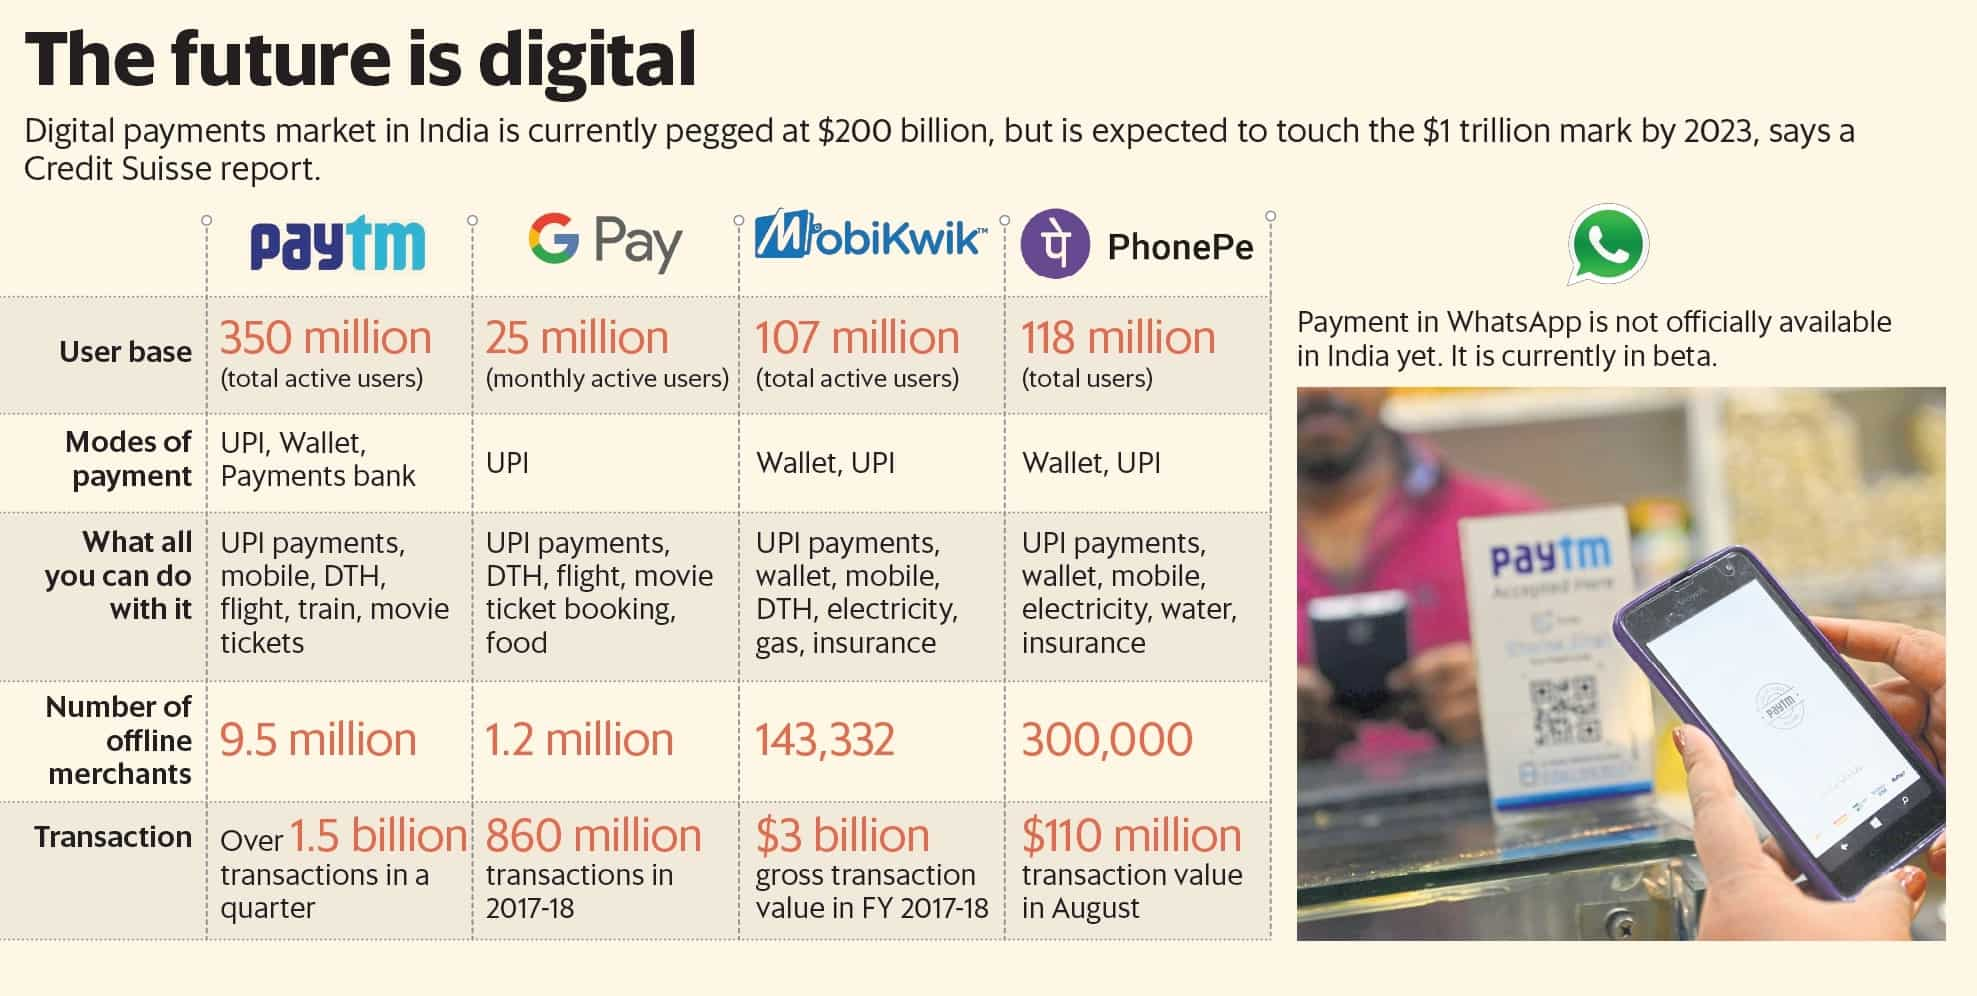 The top five trends in India's digital payment landscape